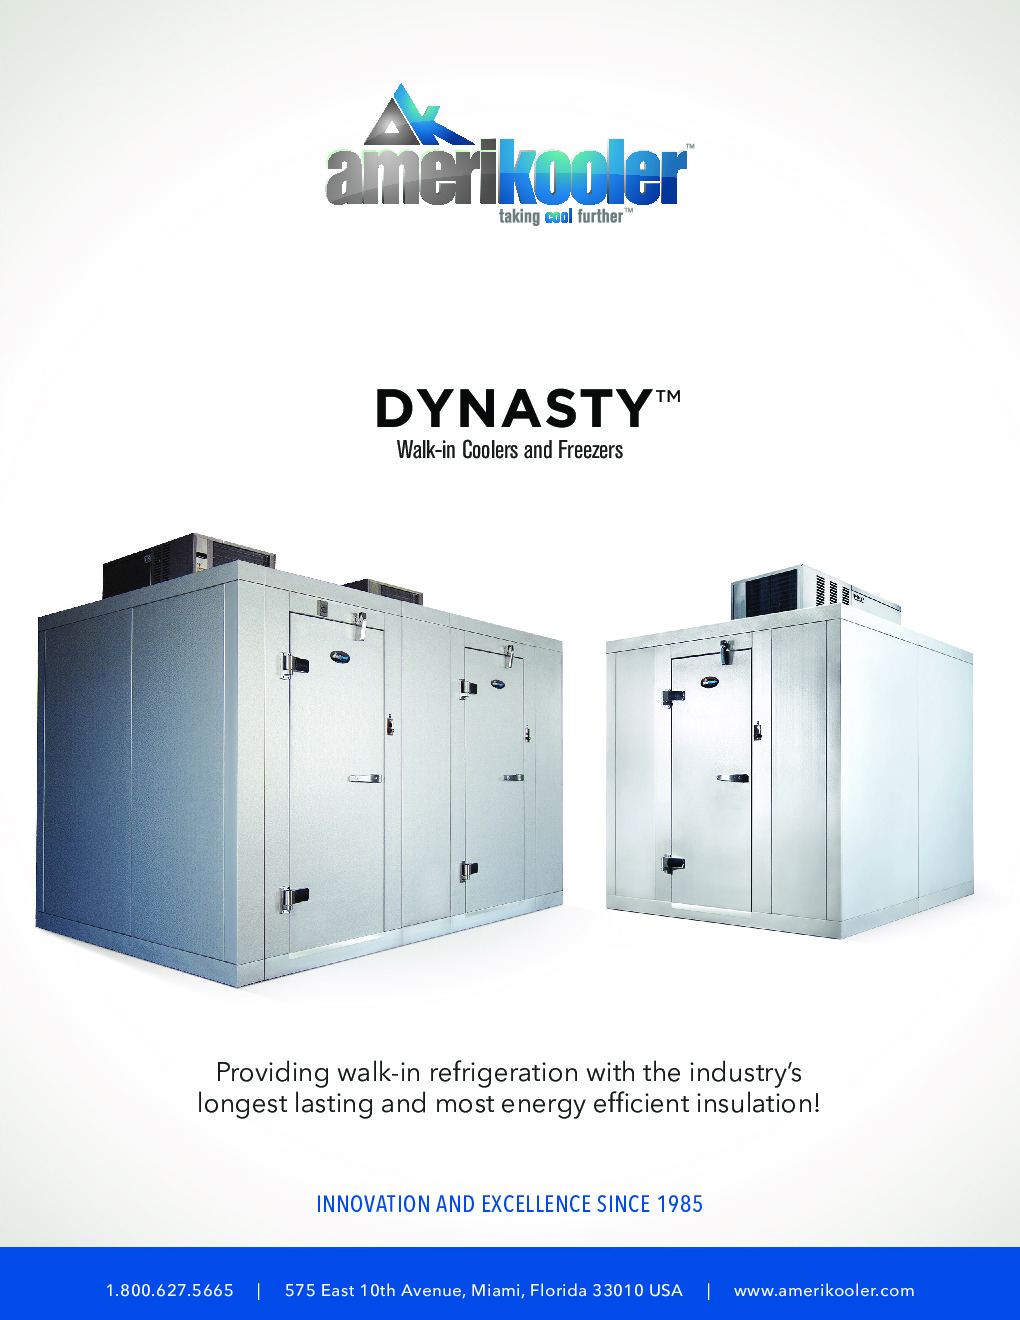 AmeriKooler DW091877F-7/11-RM 9' X 18' Walk-In Cooler, 11' L Cooler with Floor and 7' L Freezer, Remote